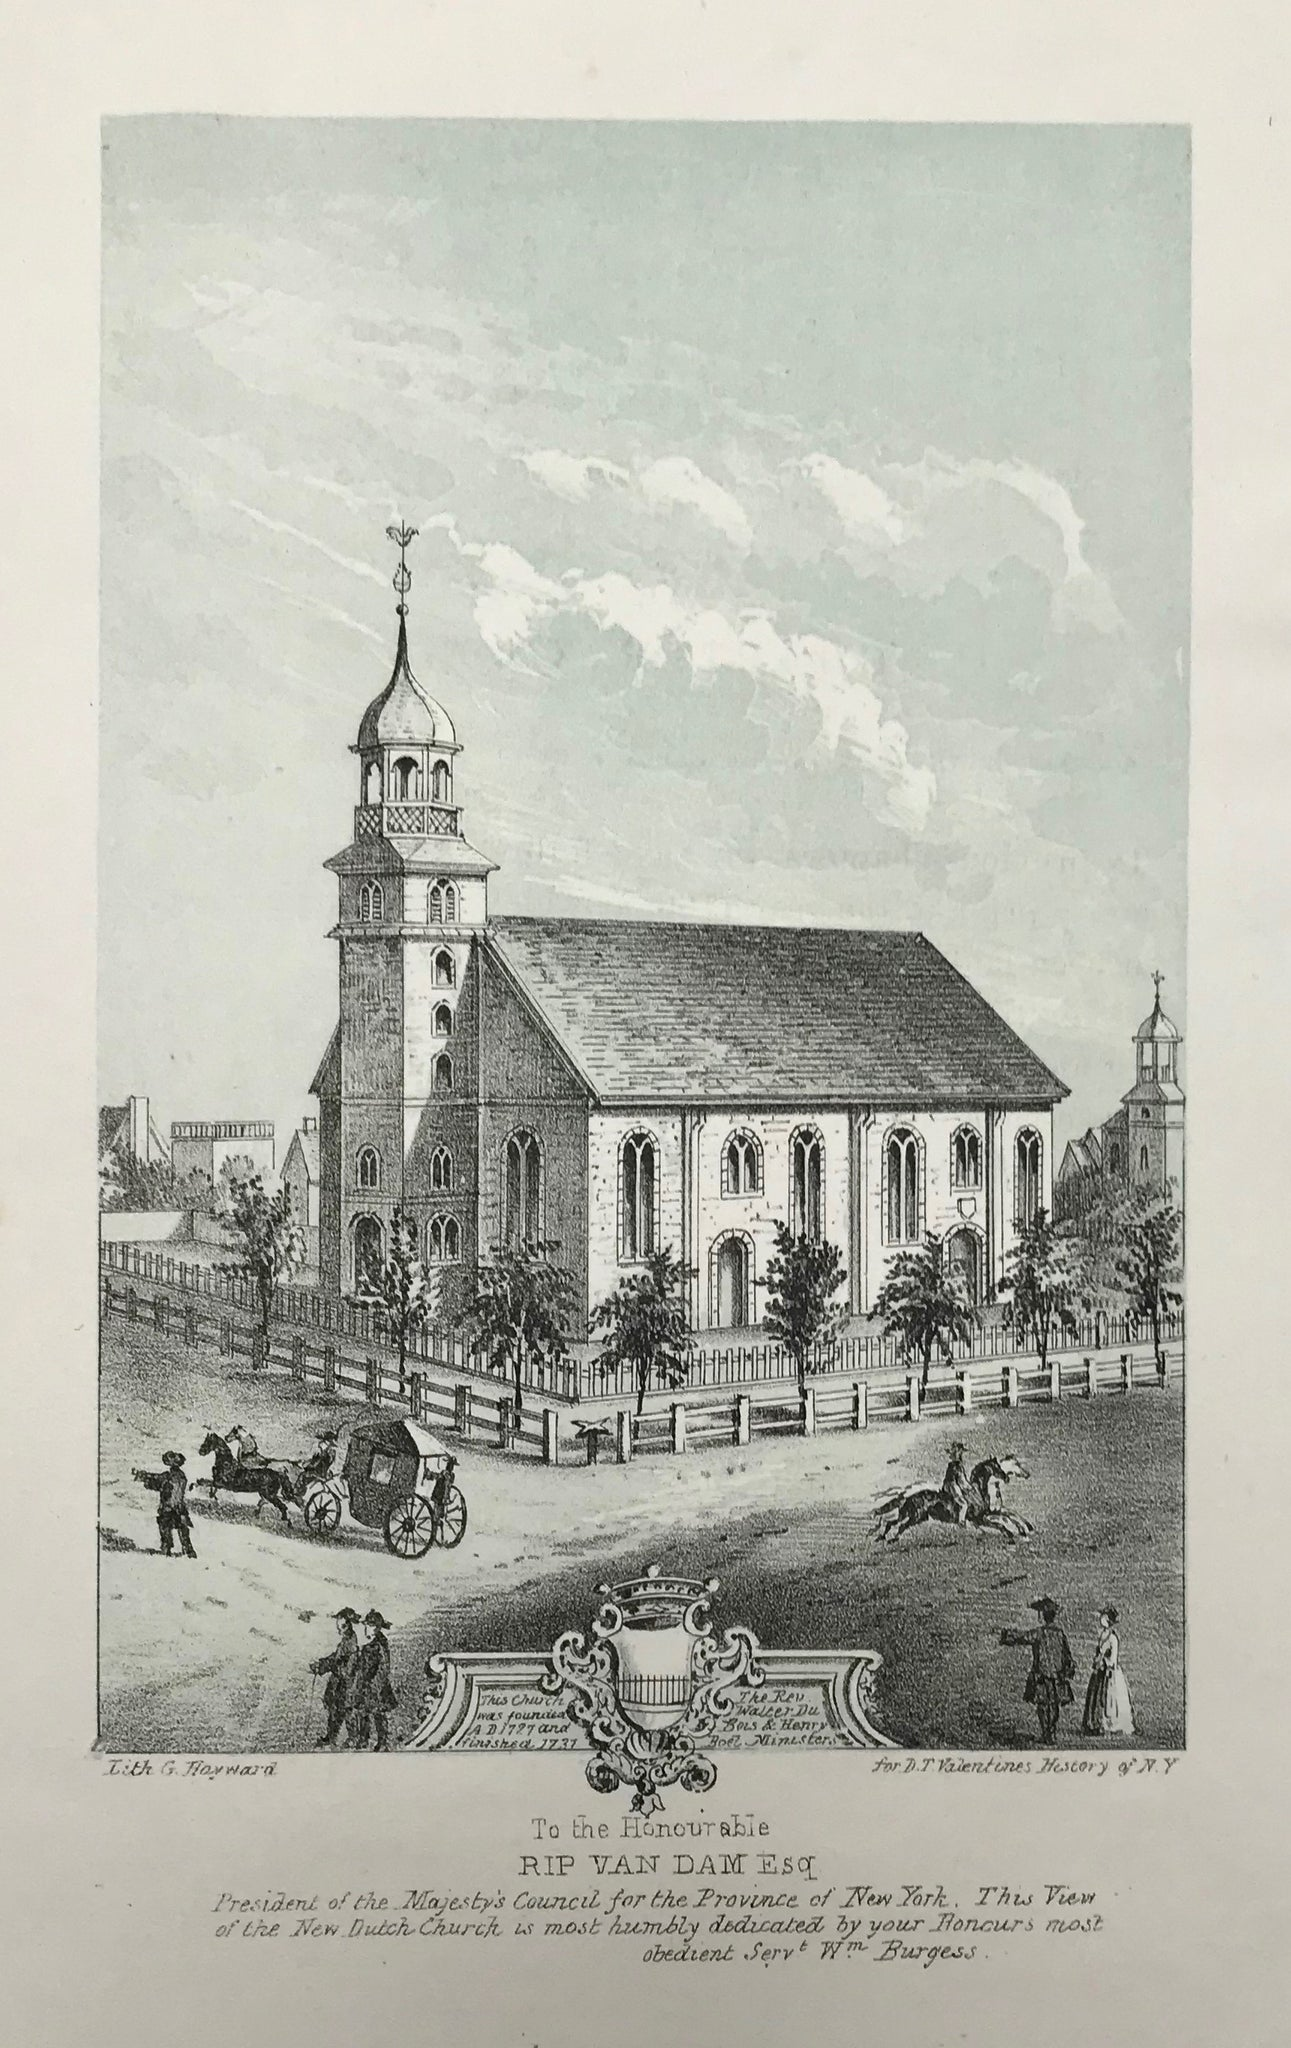 """To the Honourable Rip Van Dam Esq."" ""President of the Majesty´s Council for the Province of New York. This View of the New Dutch Church is most humbly dedicated by your Honour´s most obedient Serv. Wm Burgess.""  Lightly toned lithograph by G. Hayward for D.F. Valentine´s History of New York ca 1885."